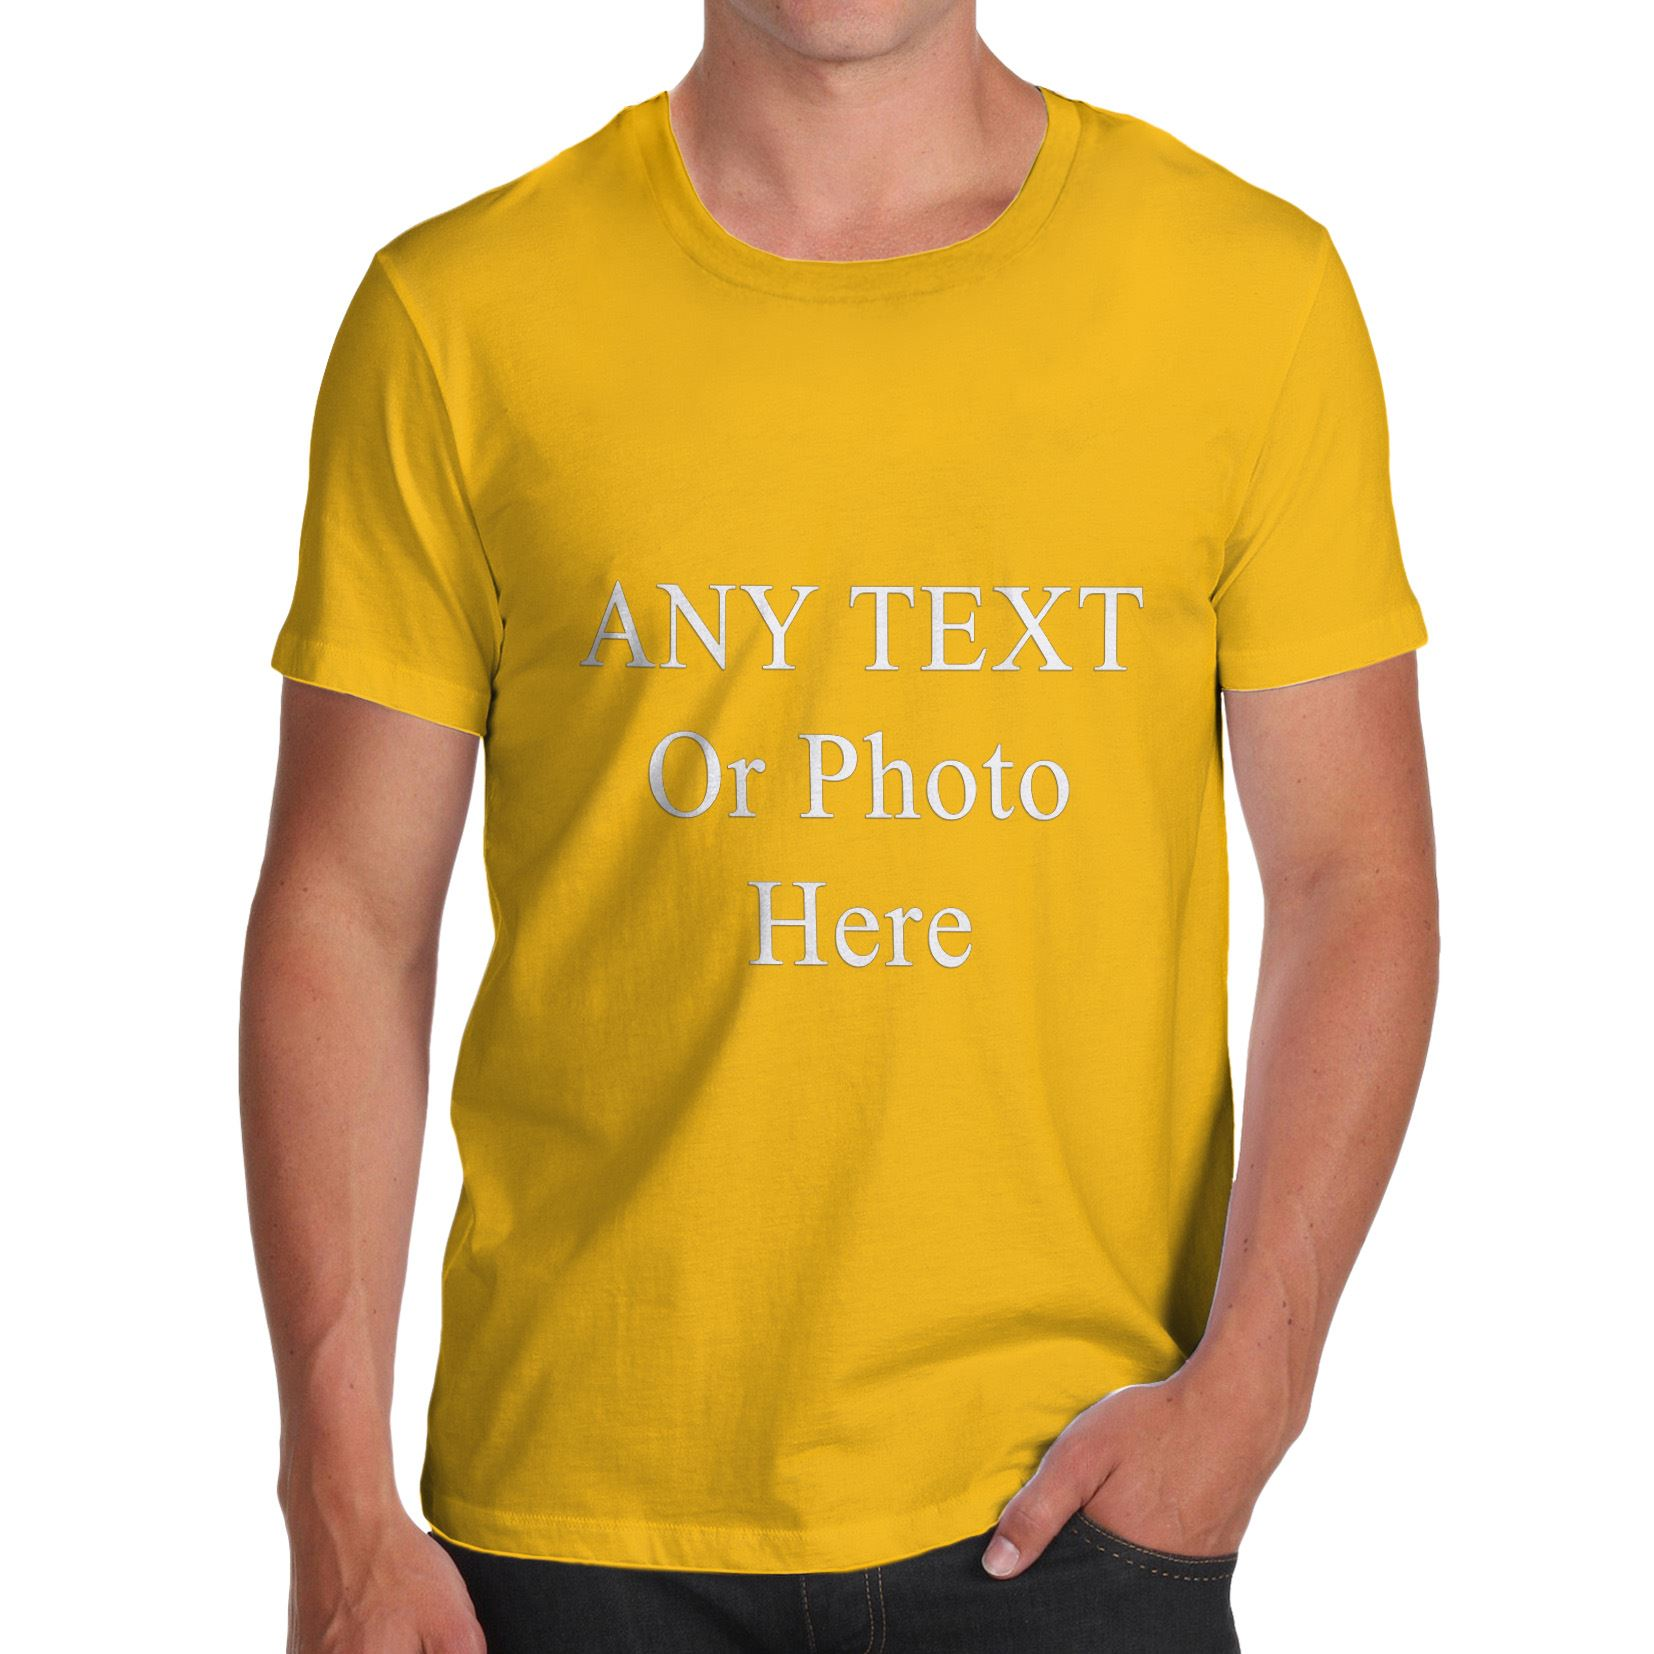 Mens custom printed personalised t shirts tee shirt stag for Sell t shirts for charity